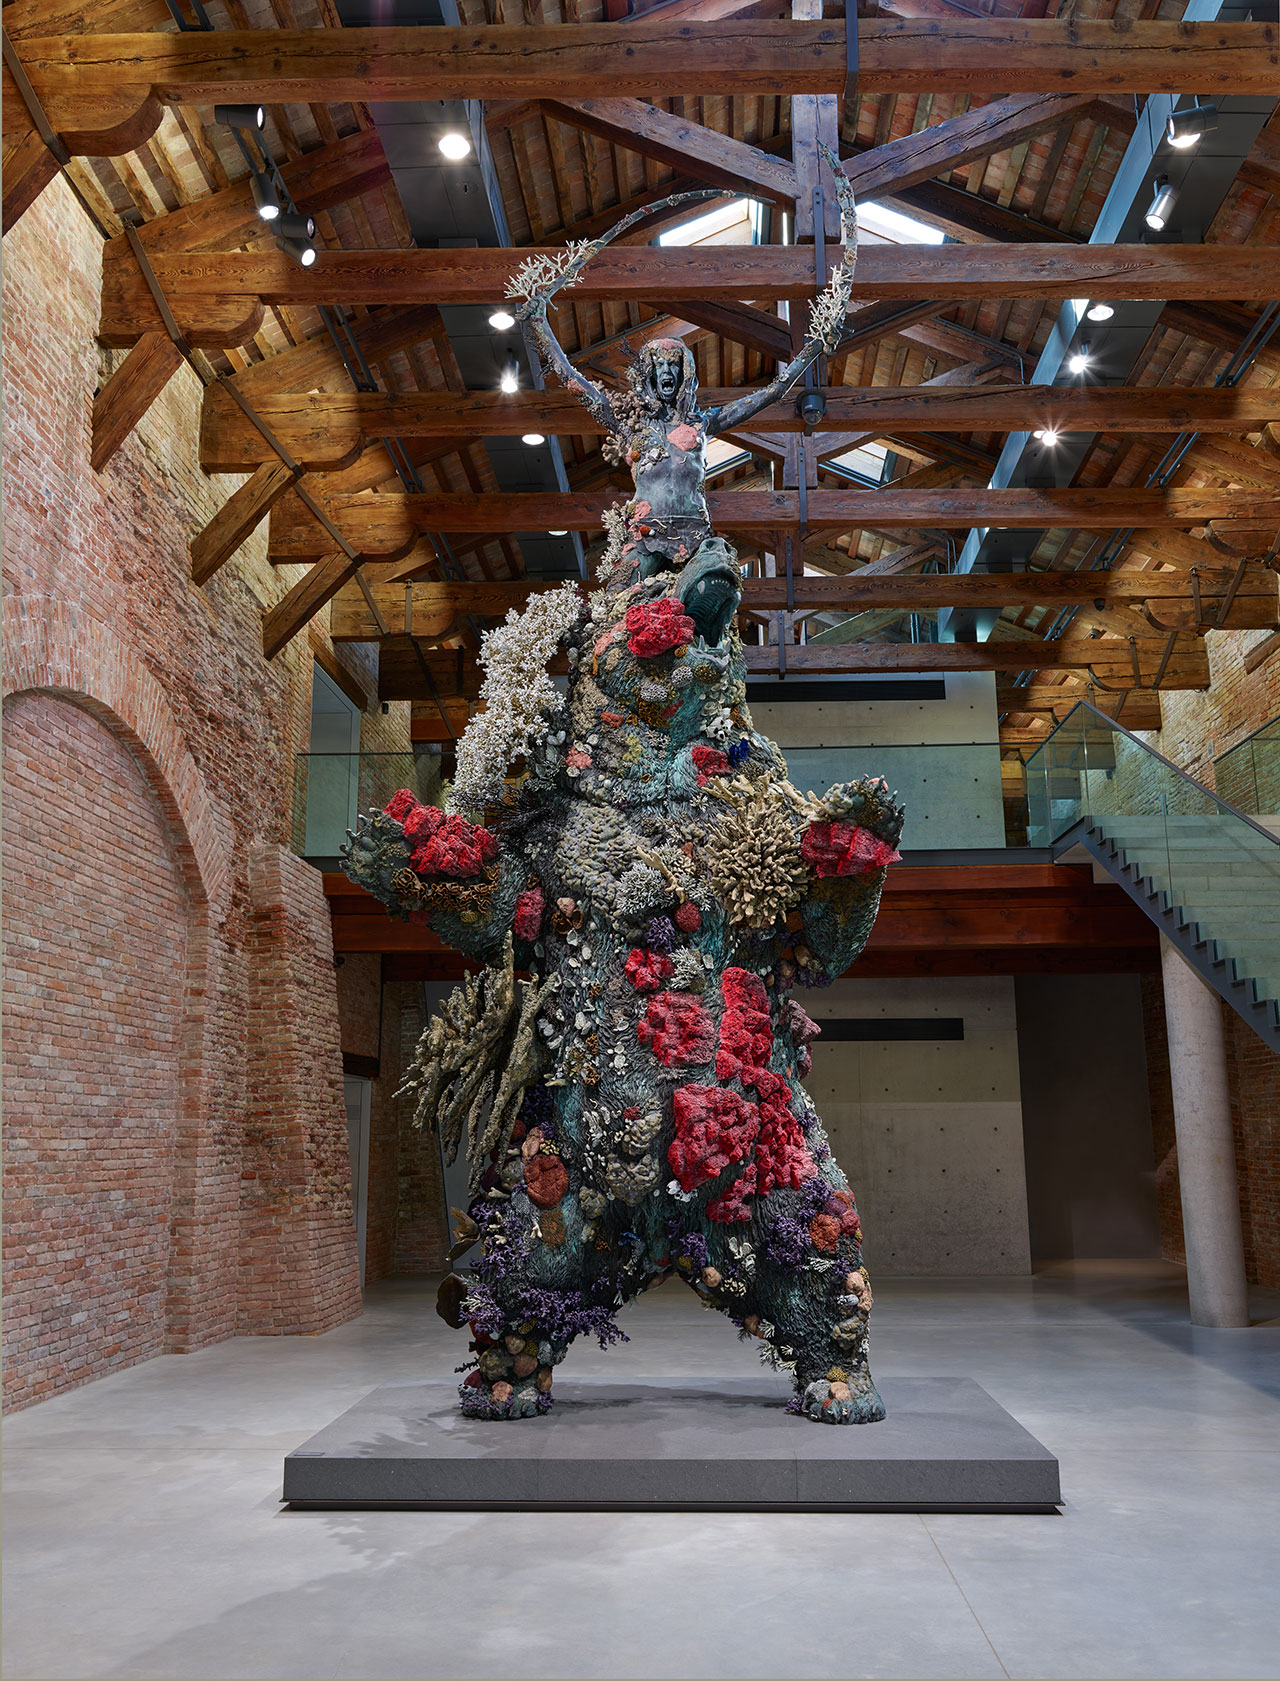 Damien Hirst, The Warrior and the Bear. Photographed by Prudence Cuming Associates © Damien Hirst and Science Ltd. All rights reserved, DACS 2017.